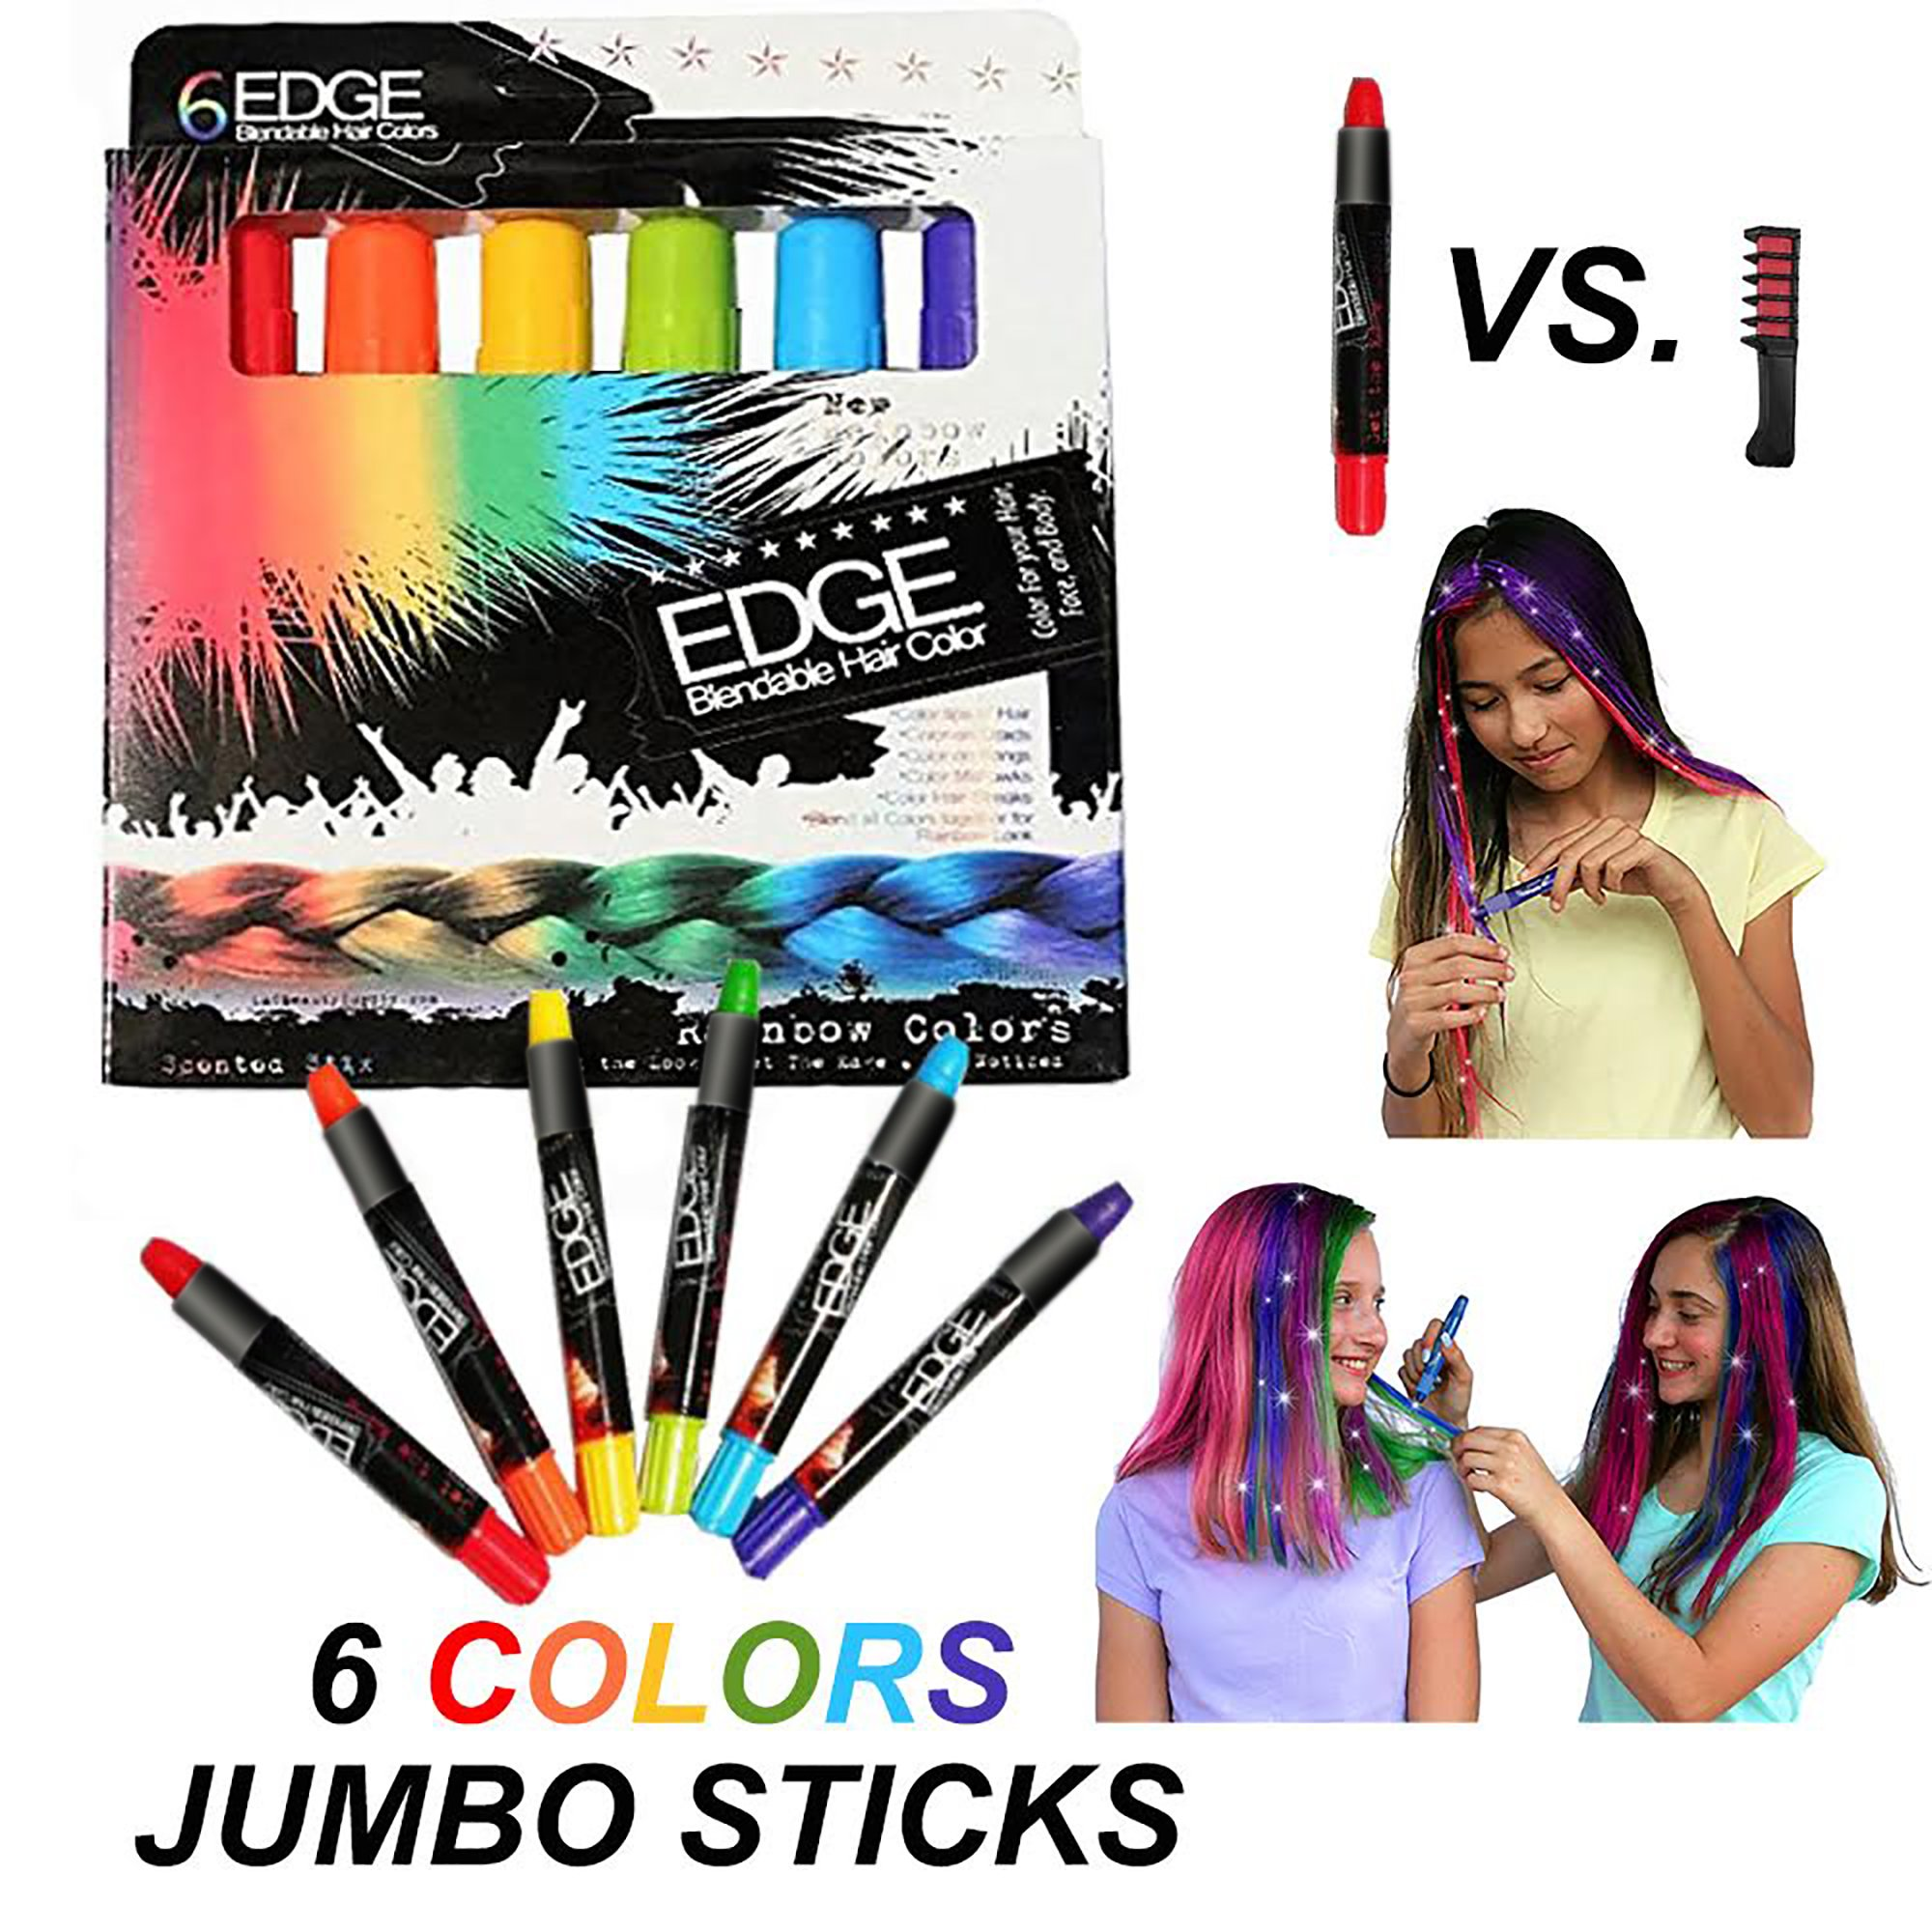 Kids Hair Chalk Scented Rainbow Non Toxic Washable Hair Color Safe For Kids And Teens. For Party, Girls Gift, Kids Toy, Birthday Gift For Girls, 6 Bright Colors by Edge Stix